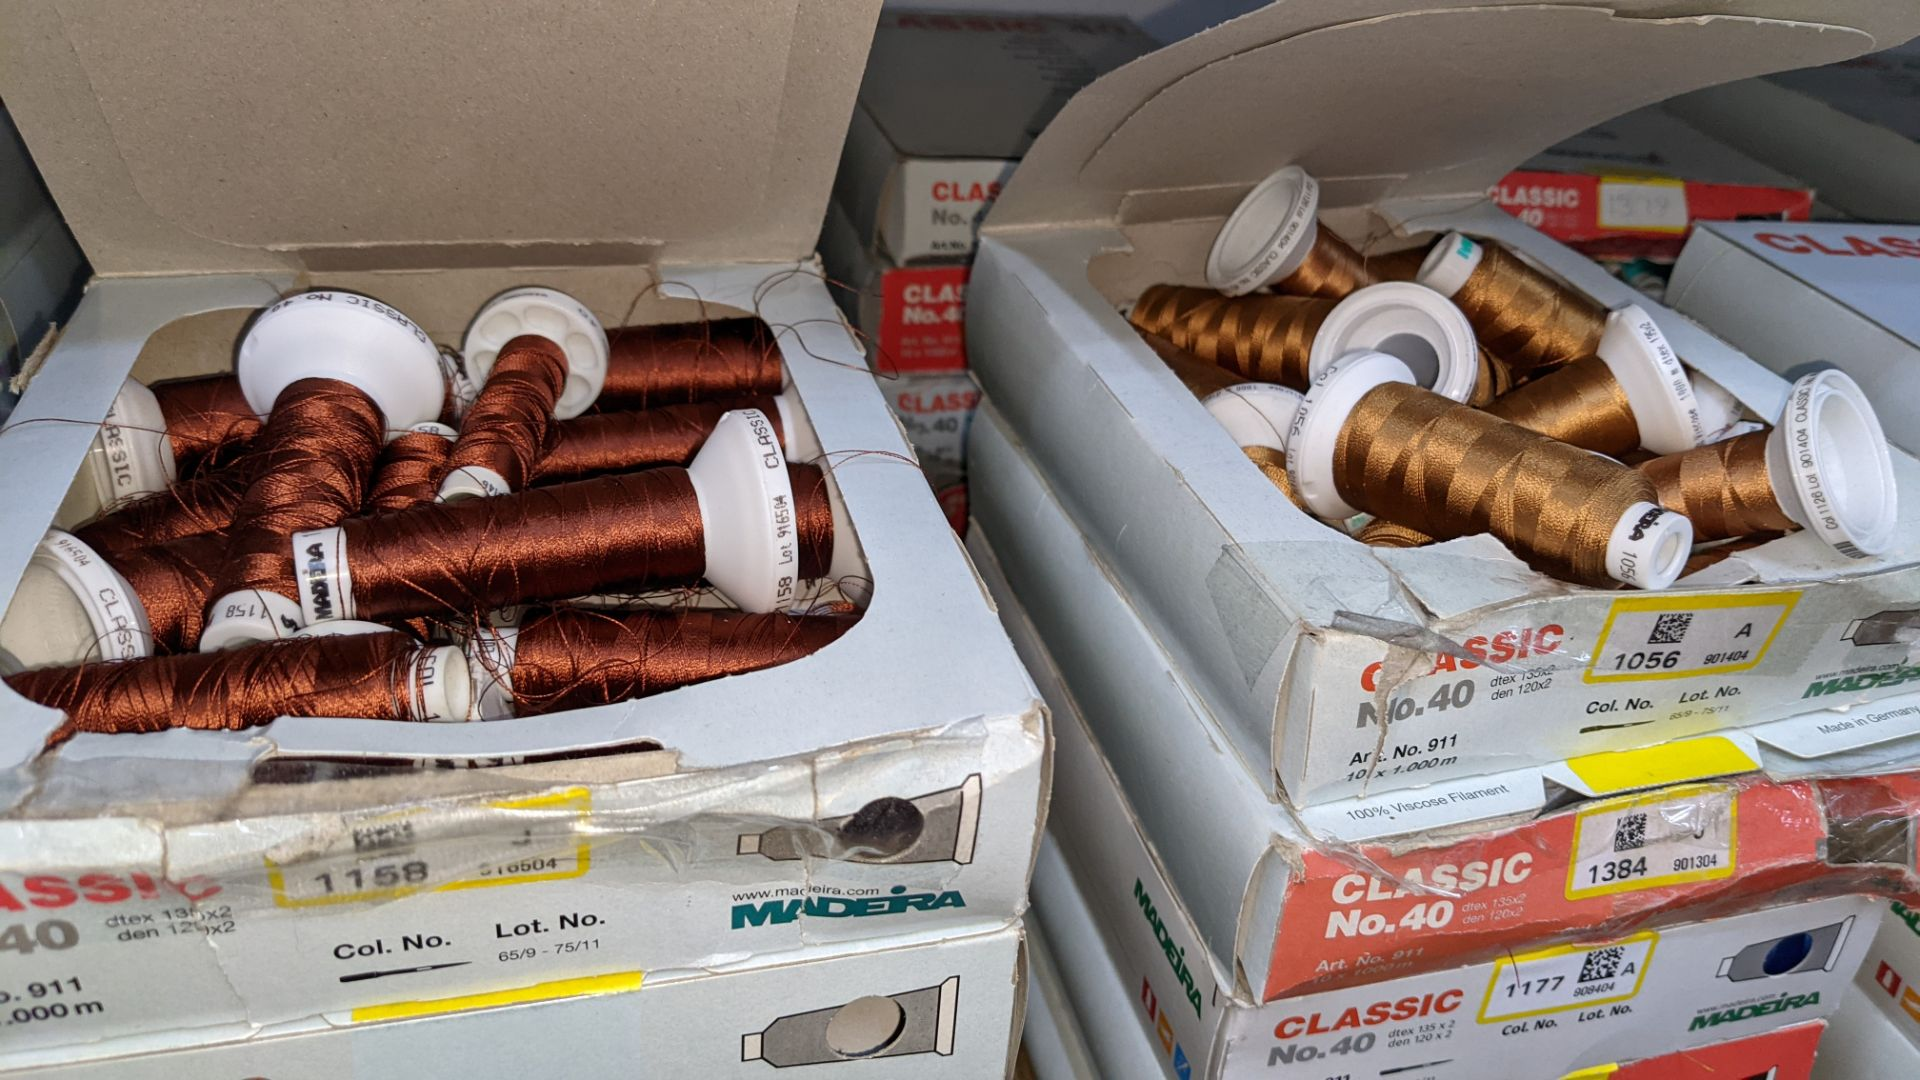 20 assorted boxes of Madeira Classic No. 40 embroidery rayon thread - Image 5 of 8